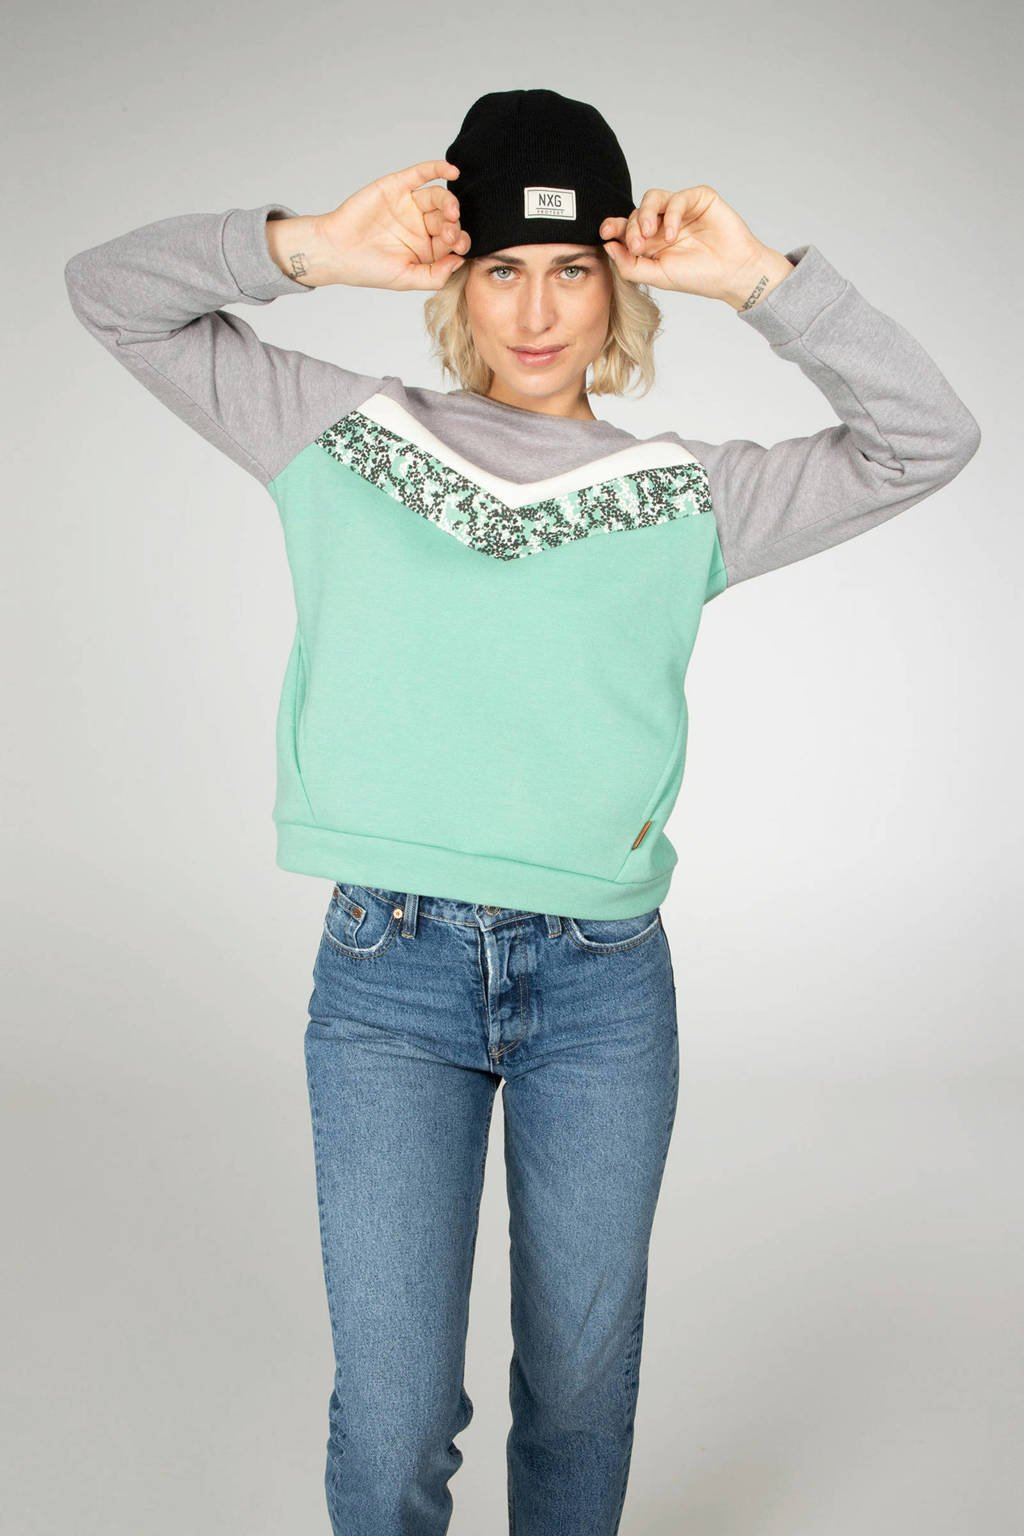 NXG by Protest sweater dream, Dream